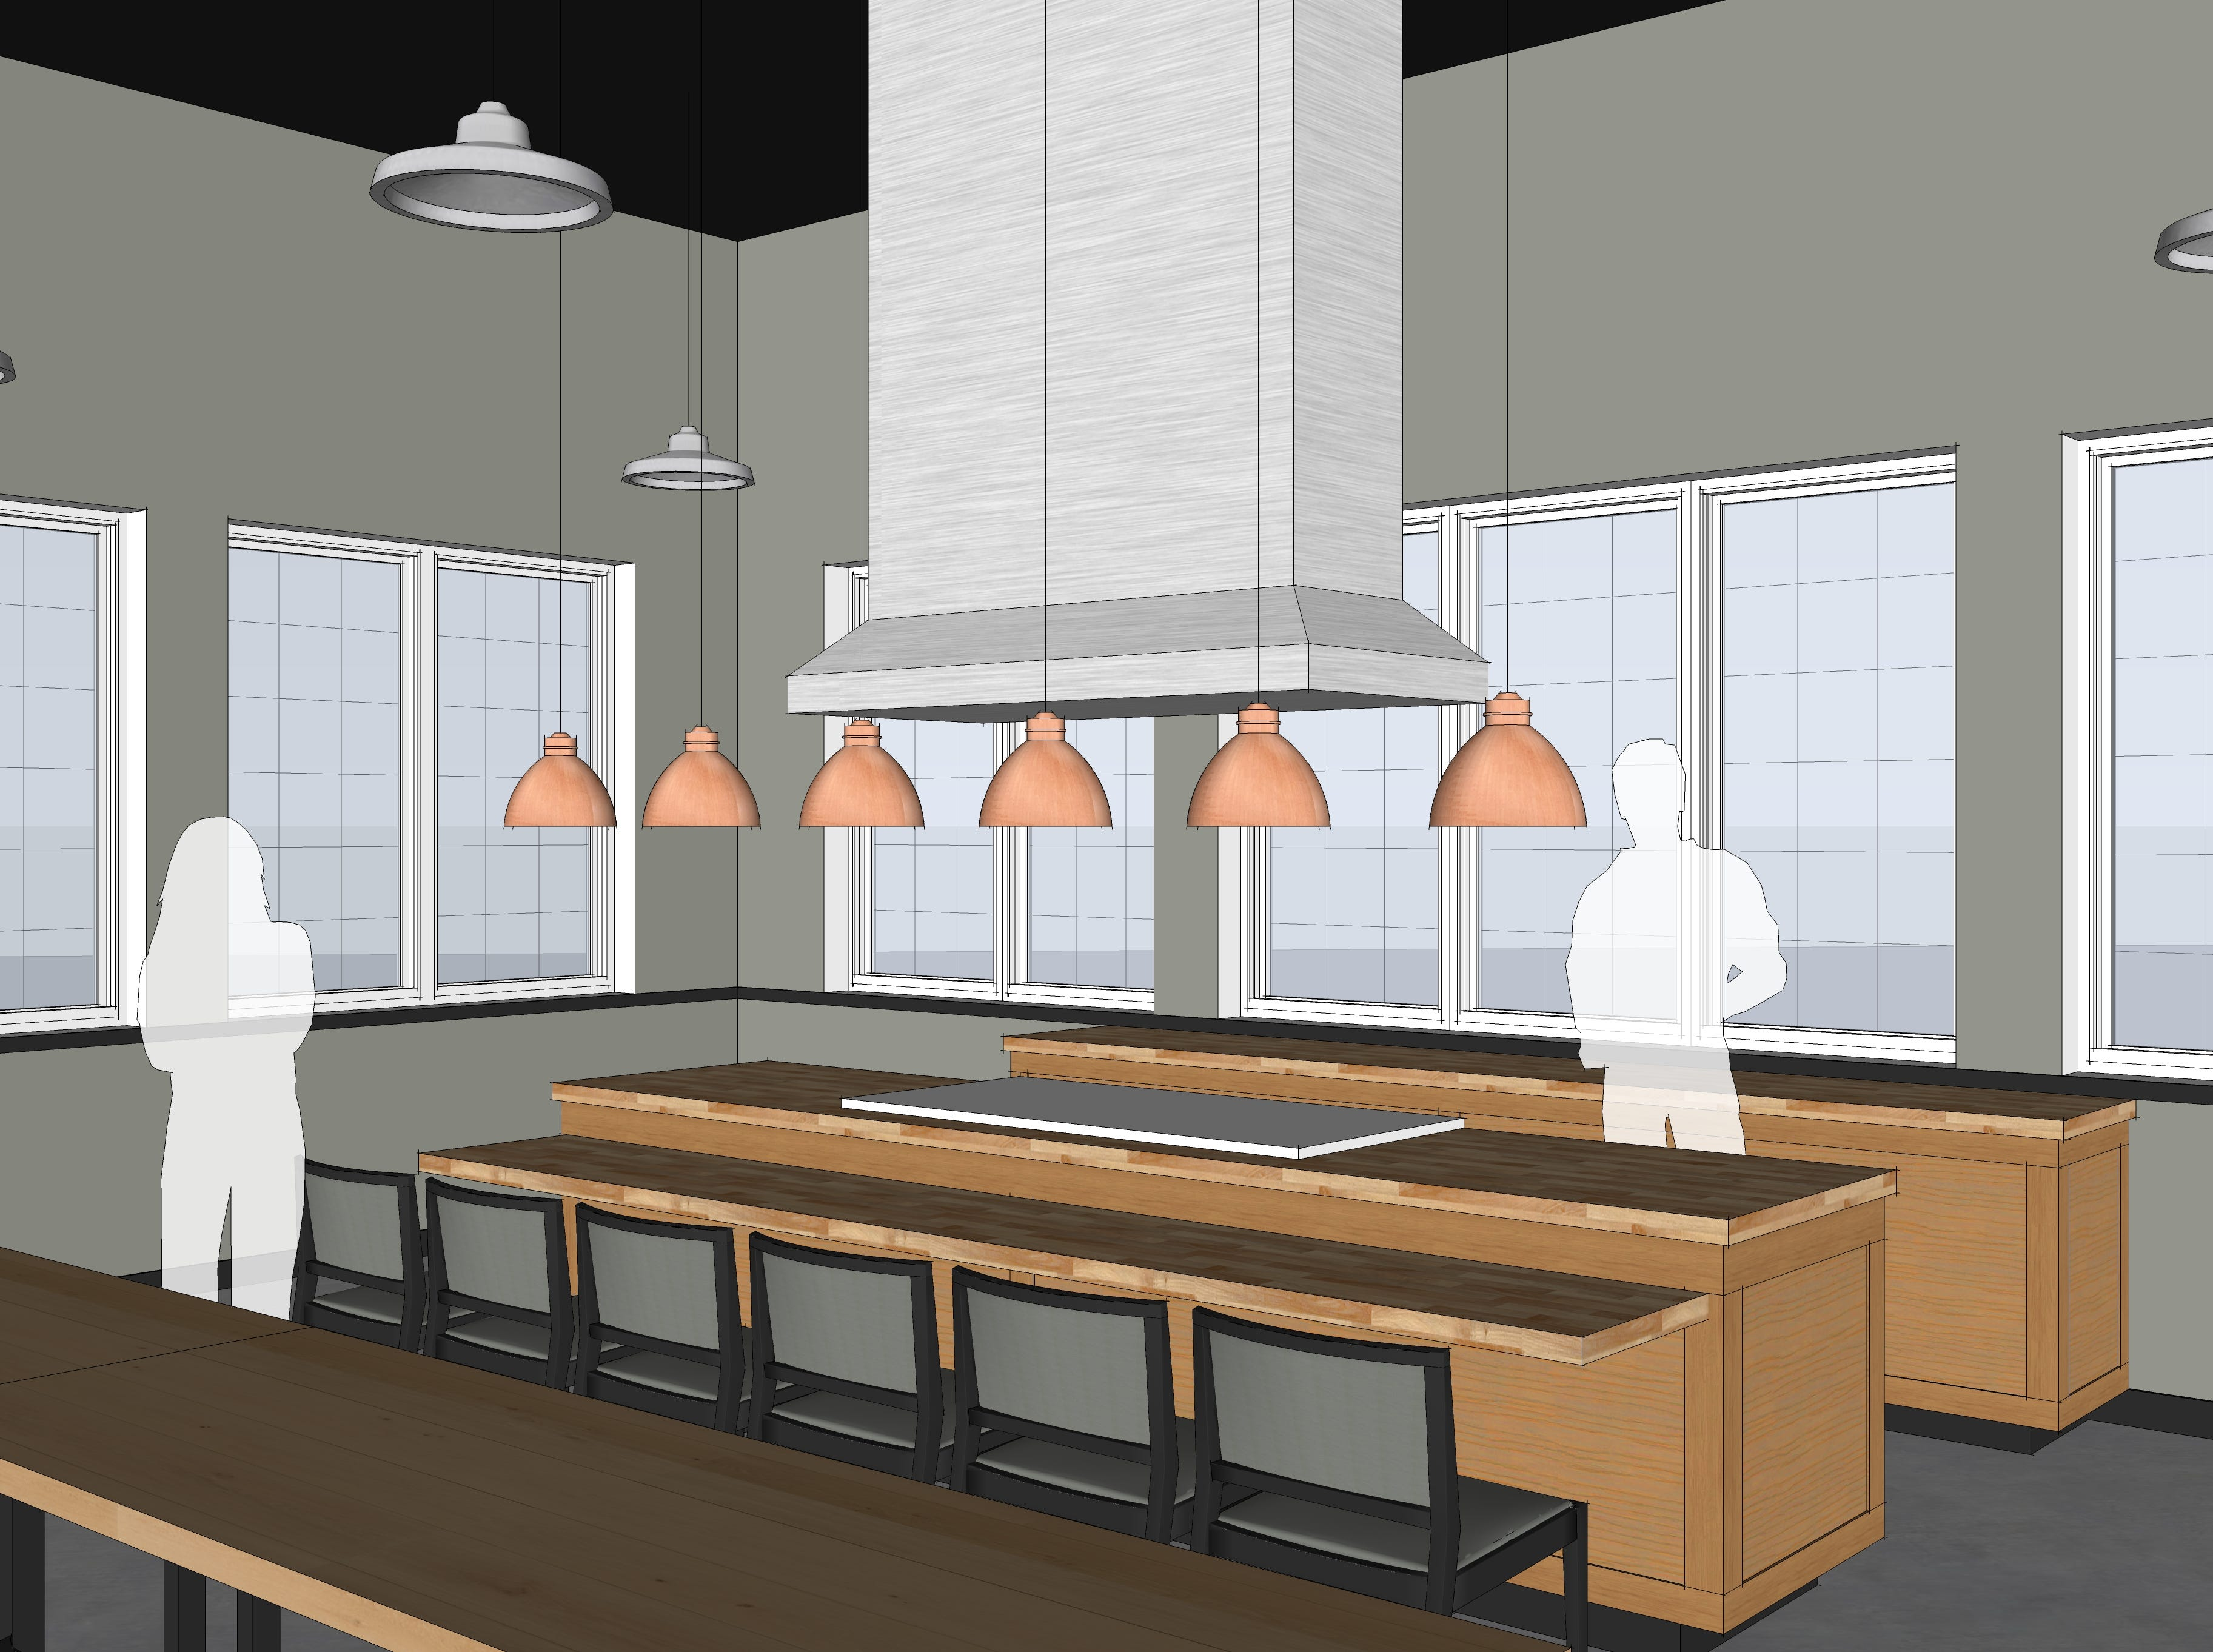 An rendering of the exhibition kitchen, part of Look's Market's plans to transform the former C.J. Callaway's dining and entertainment complex in south Sioux Falls.